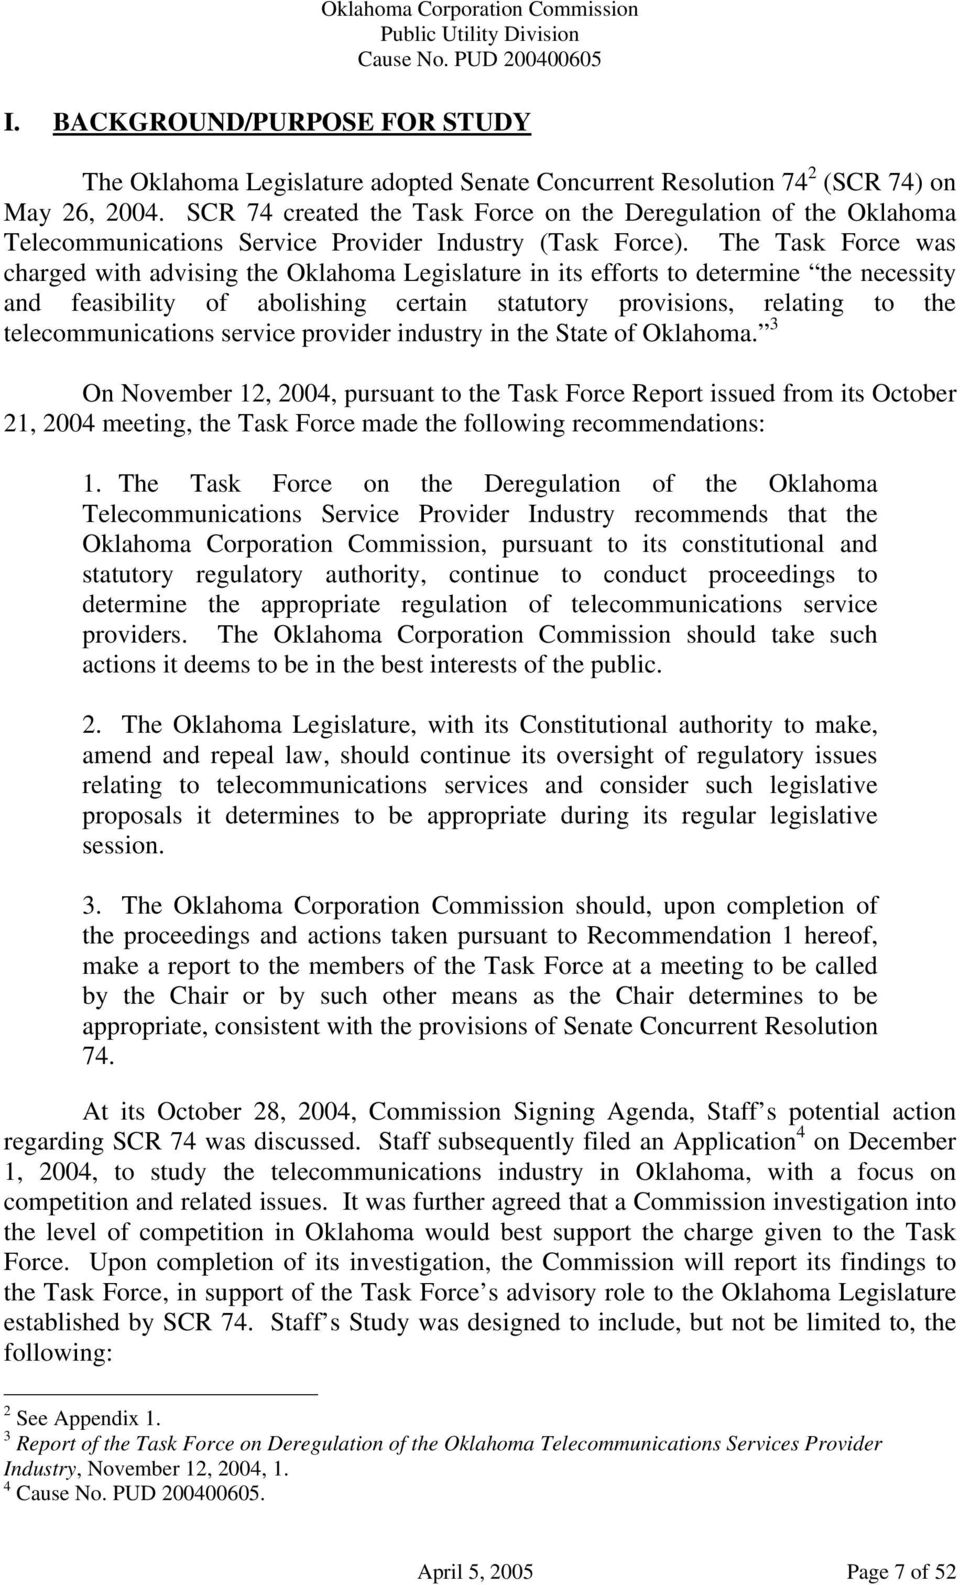 The Task Force was charged with advising the Oklahoma Legislature in its efforts to determine the necessity and feasibility of abolishing certain statutory provisions, relating to the